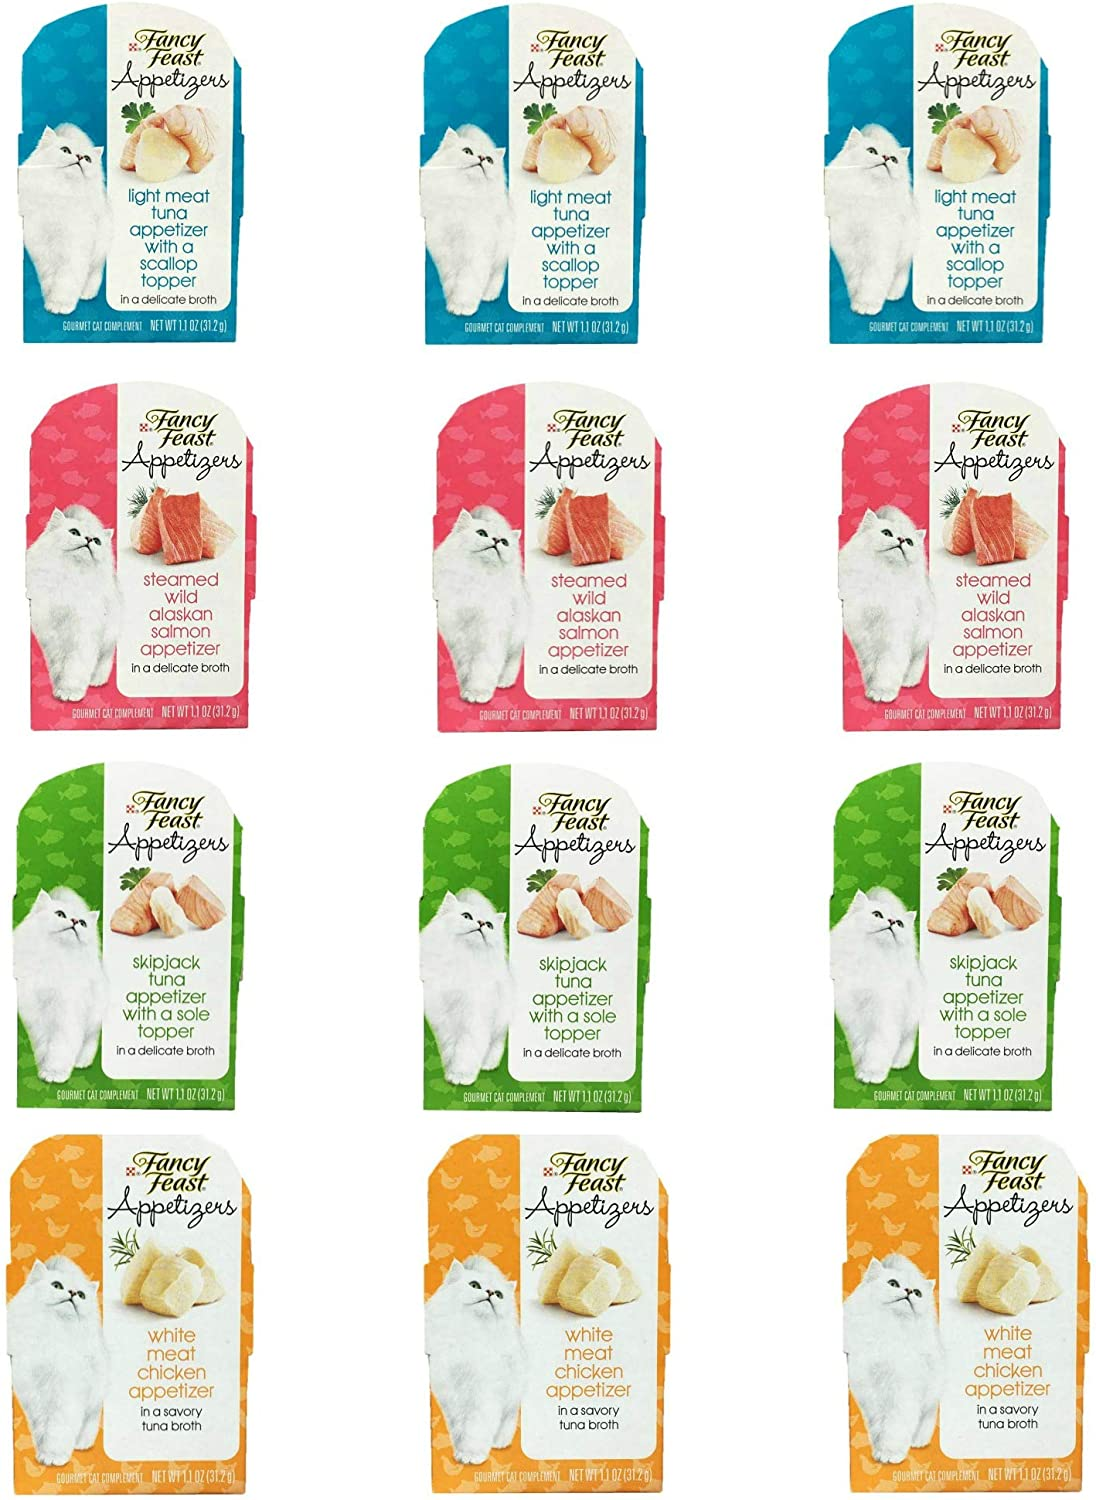 Purina Purely Fancy Feast Appetizers Cat Treats Flavor Variety Sampler Bundle of 12 Containers, 1.1 Ounces Each (3 Light Meat Tuna, 3 Salmon, 3 Tuna, 3 Chicken)